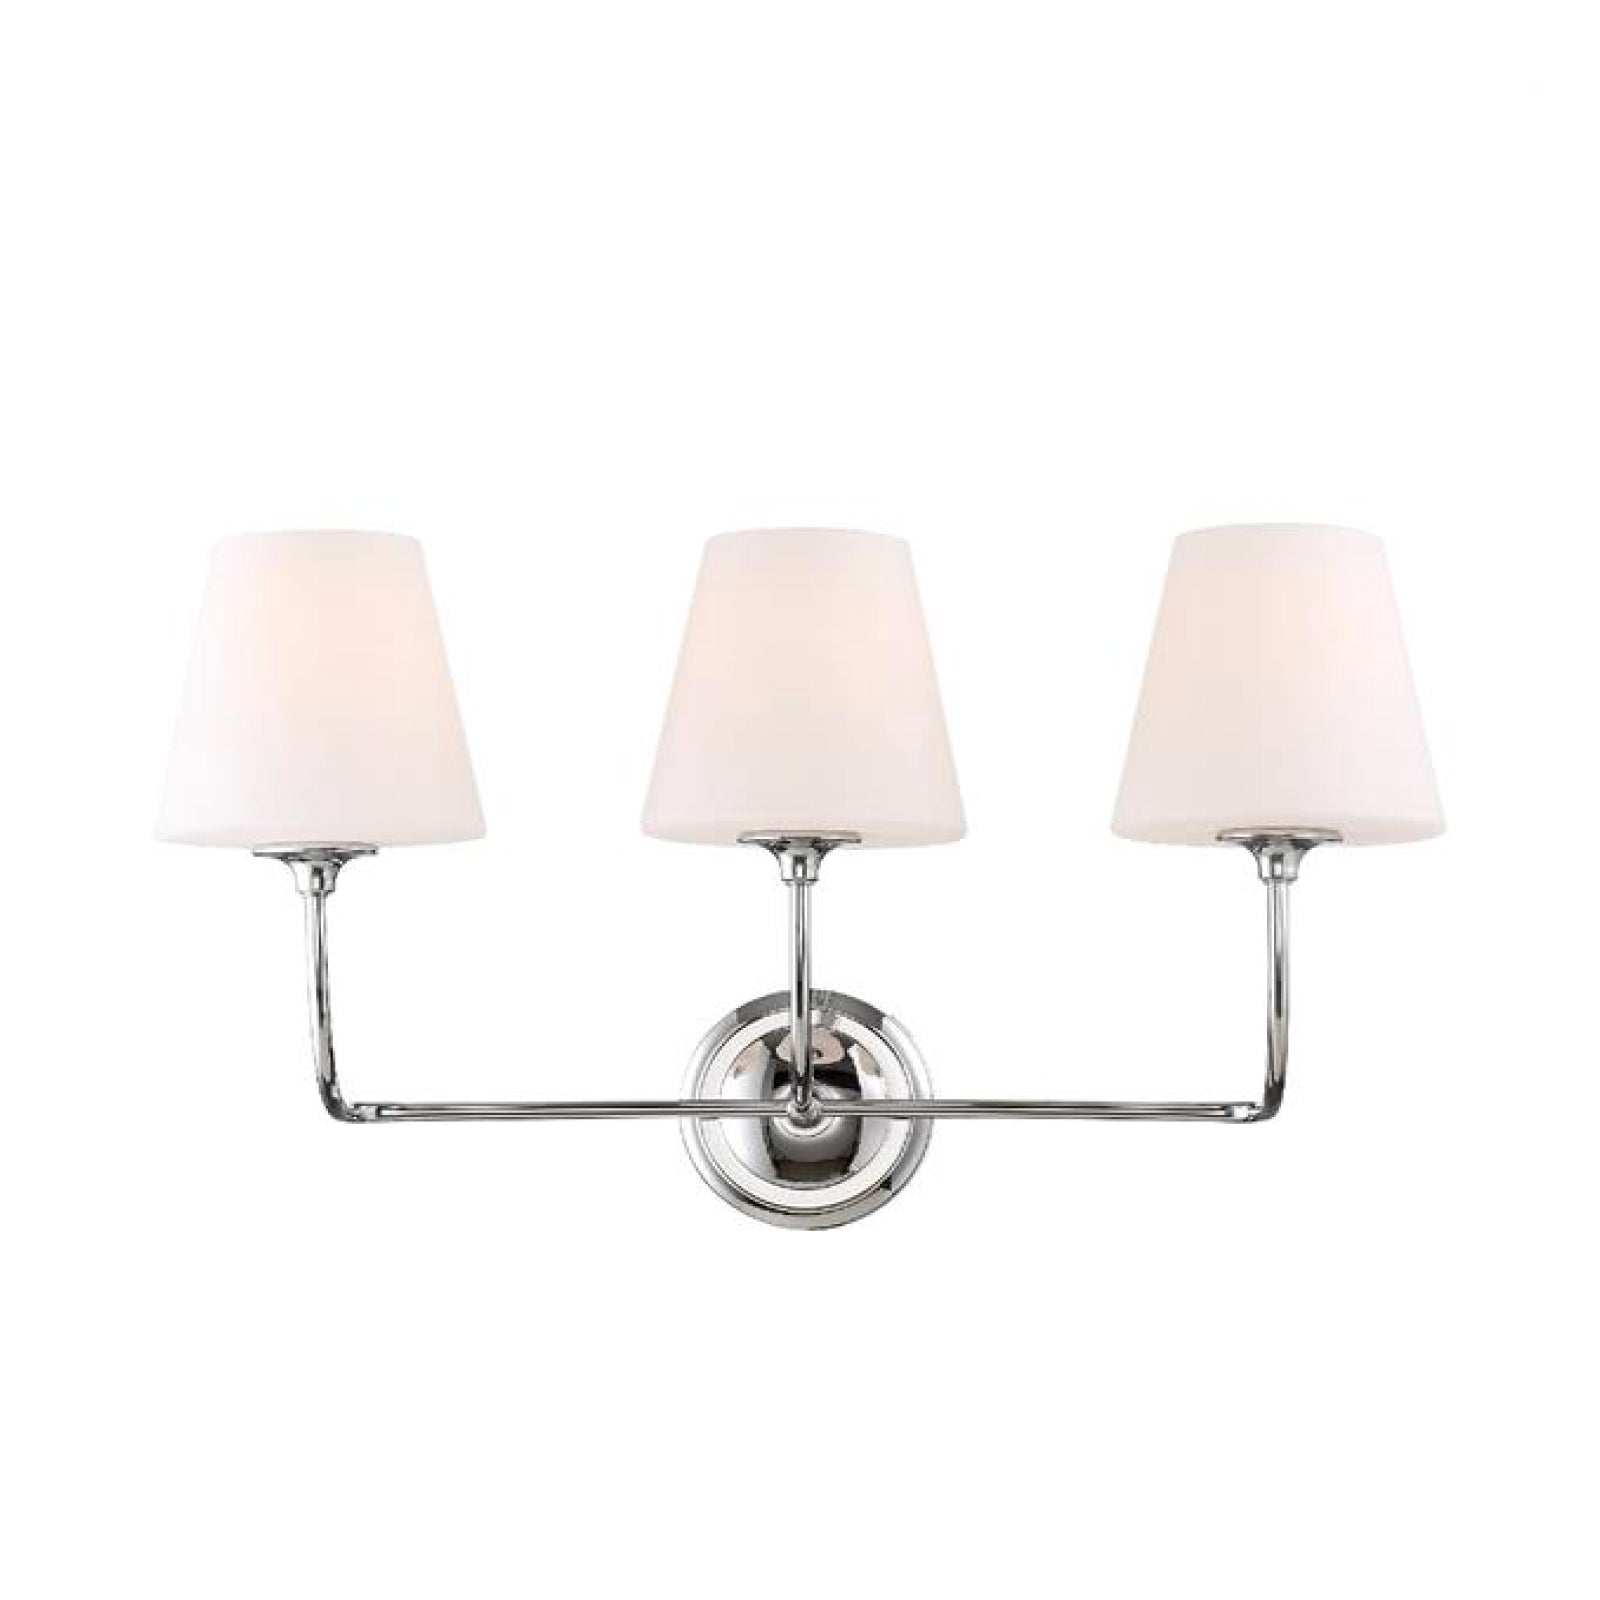 Abrams Vanity Light in Polished Chrome